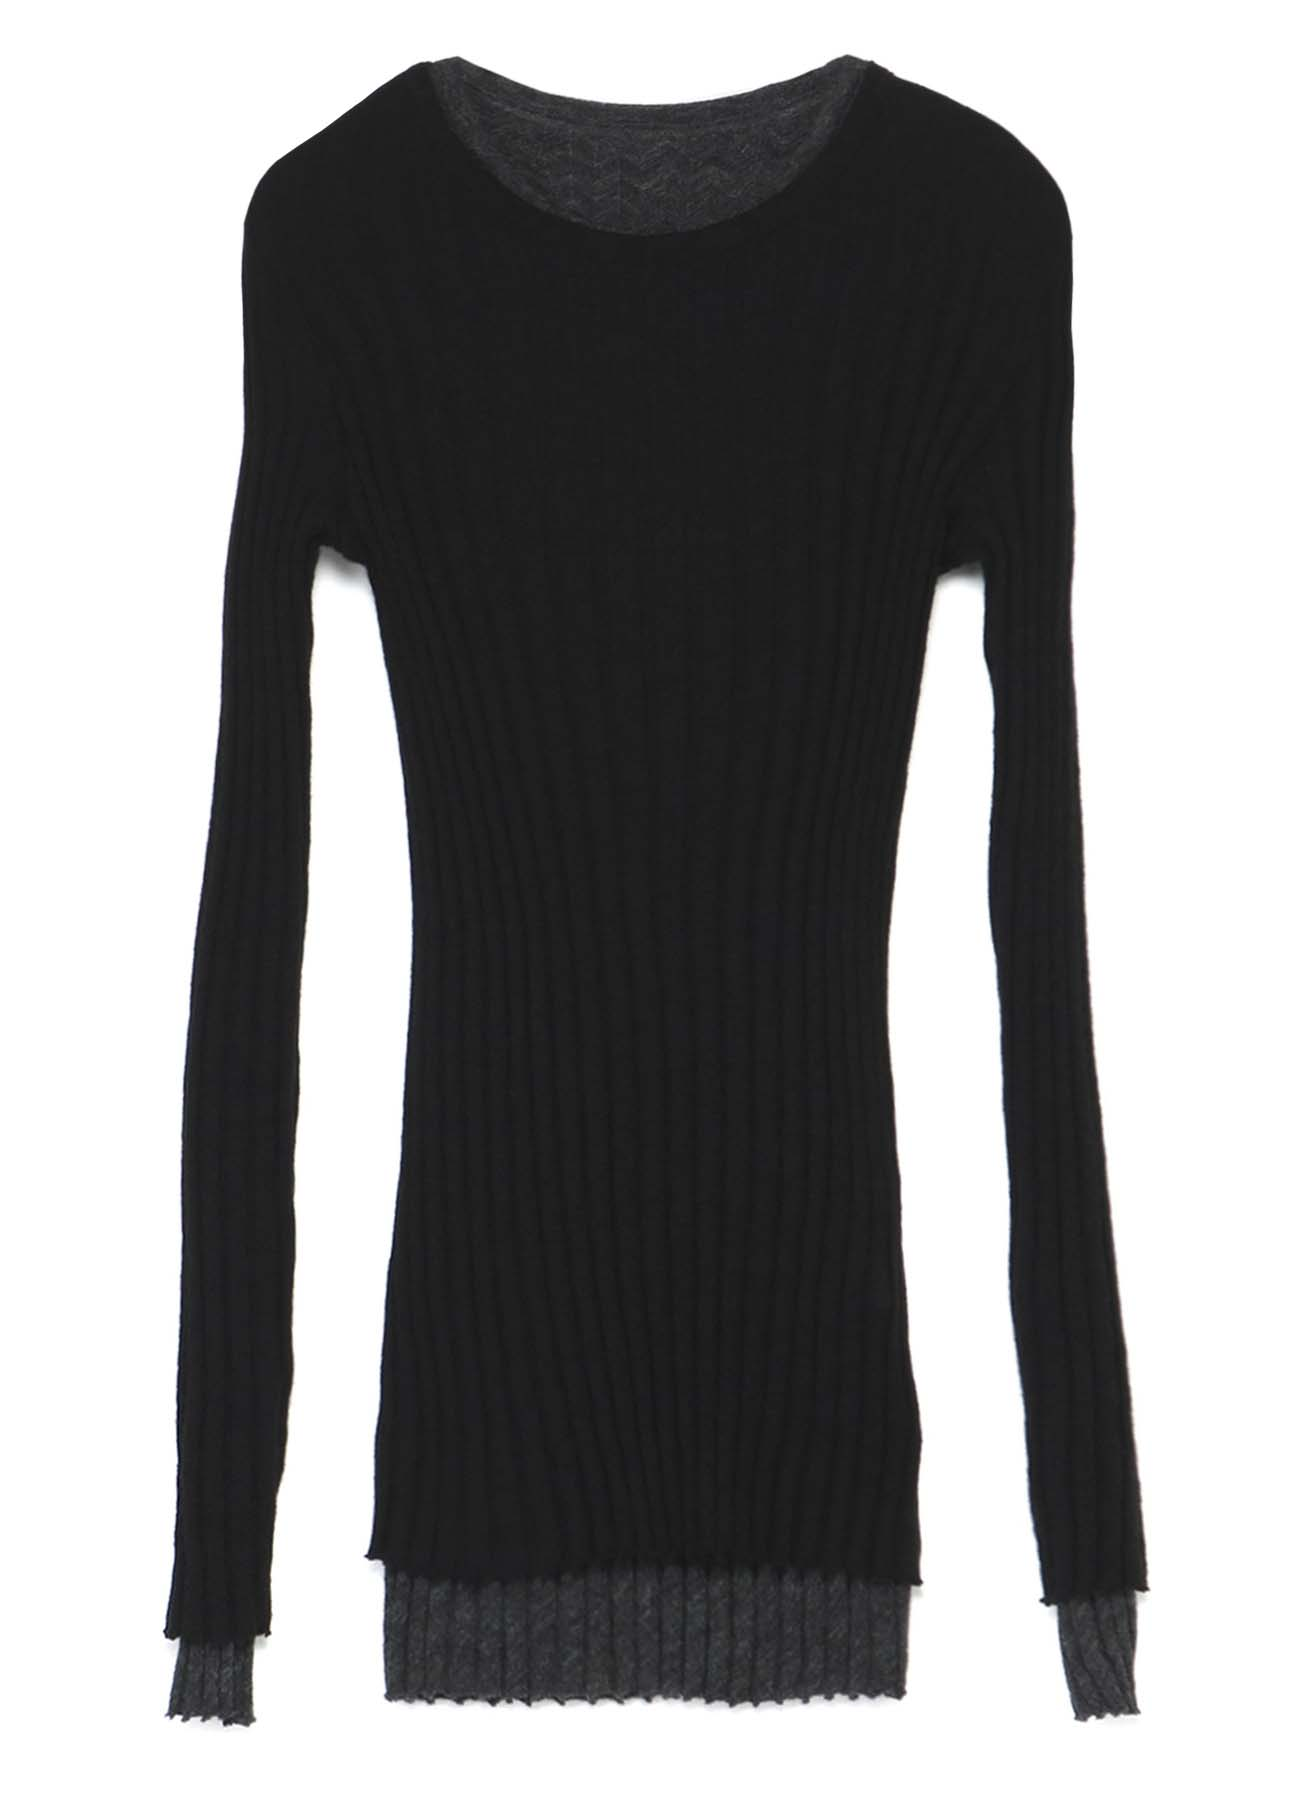 GAUZE WIDE MIX UP ROUND NECK LAYER T